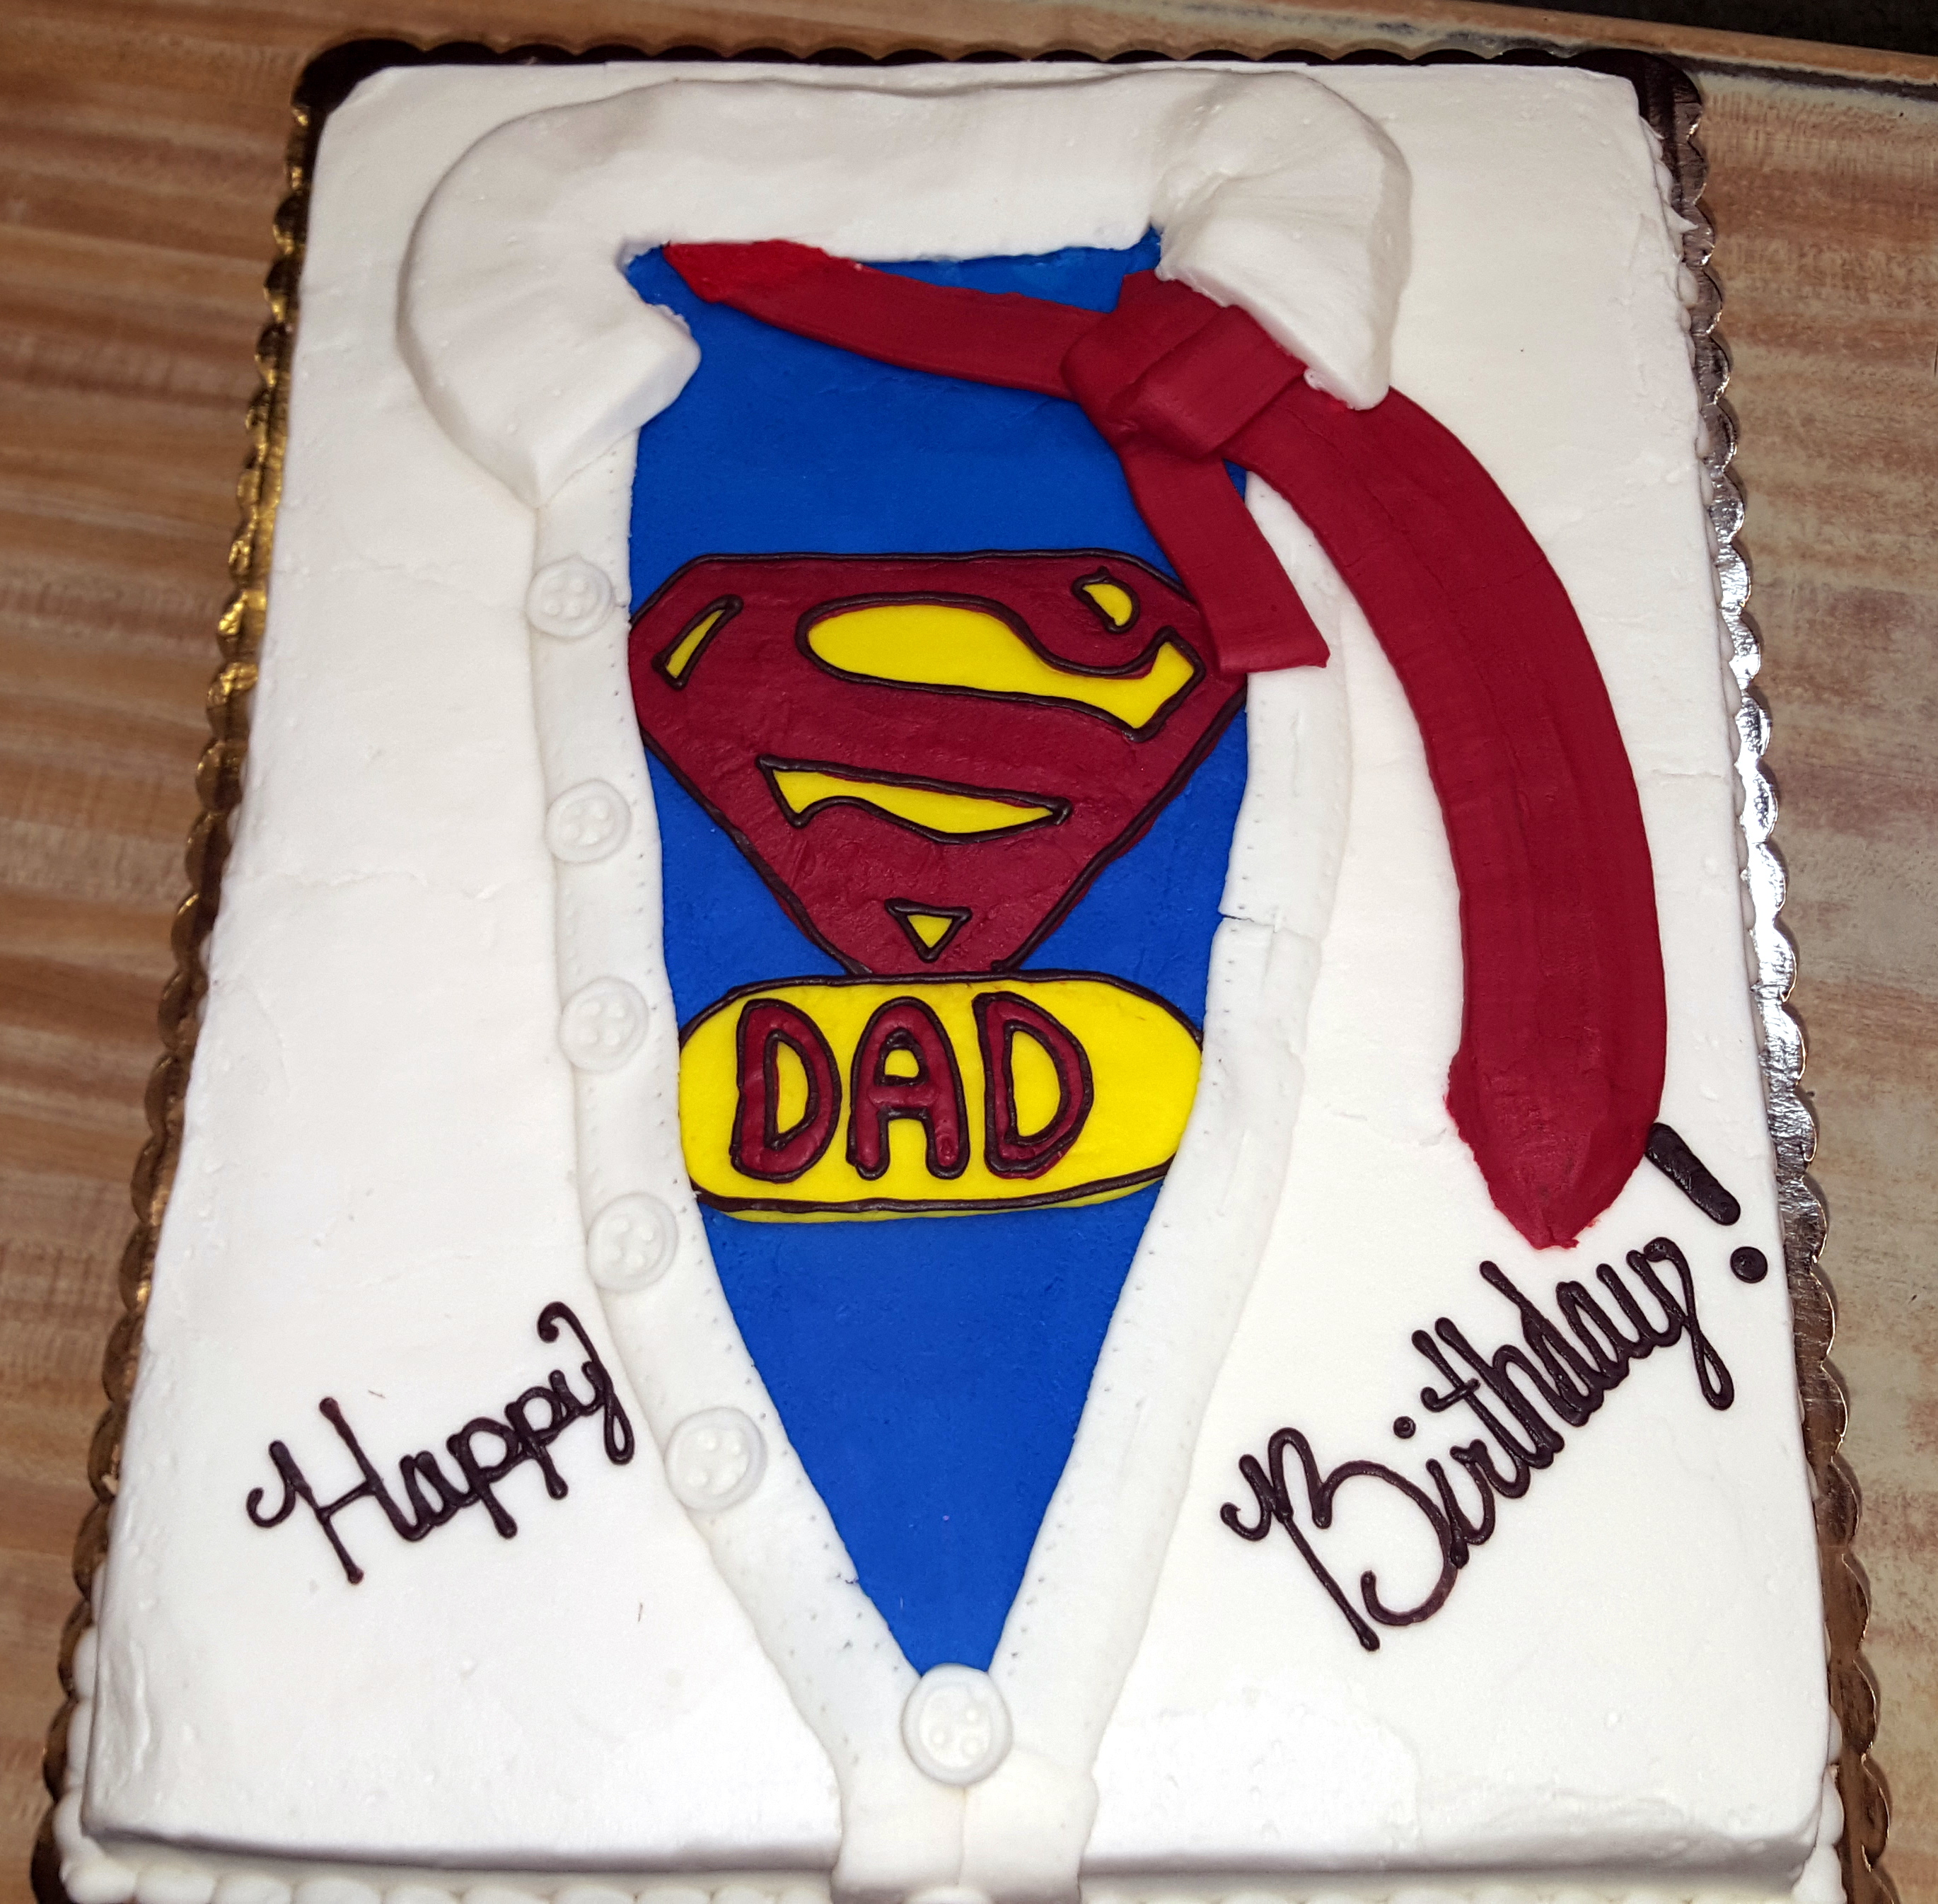 SuperDad Birthday Cake 39